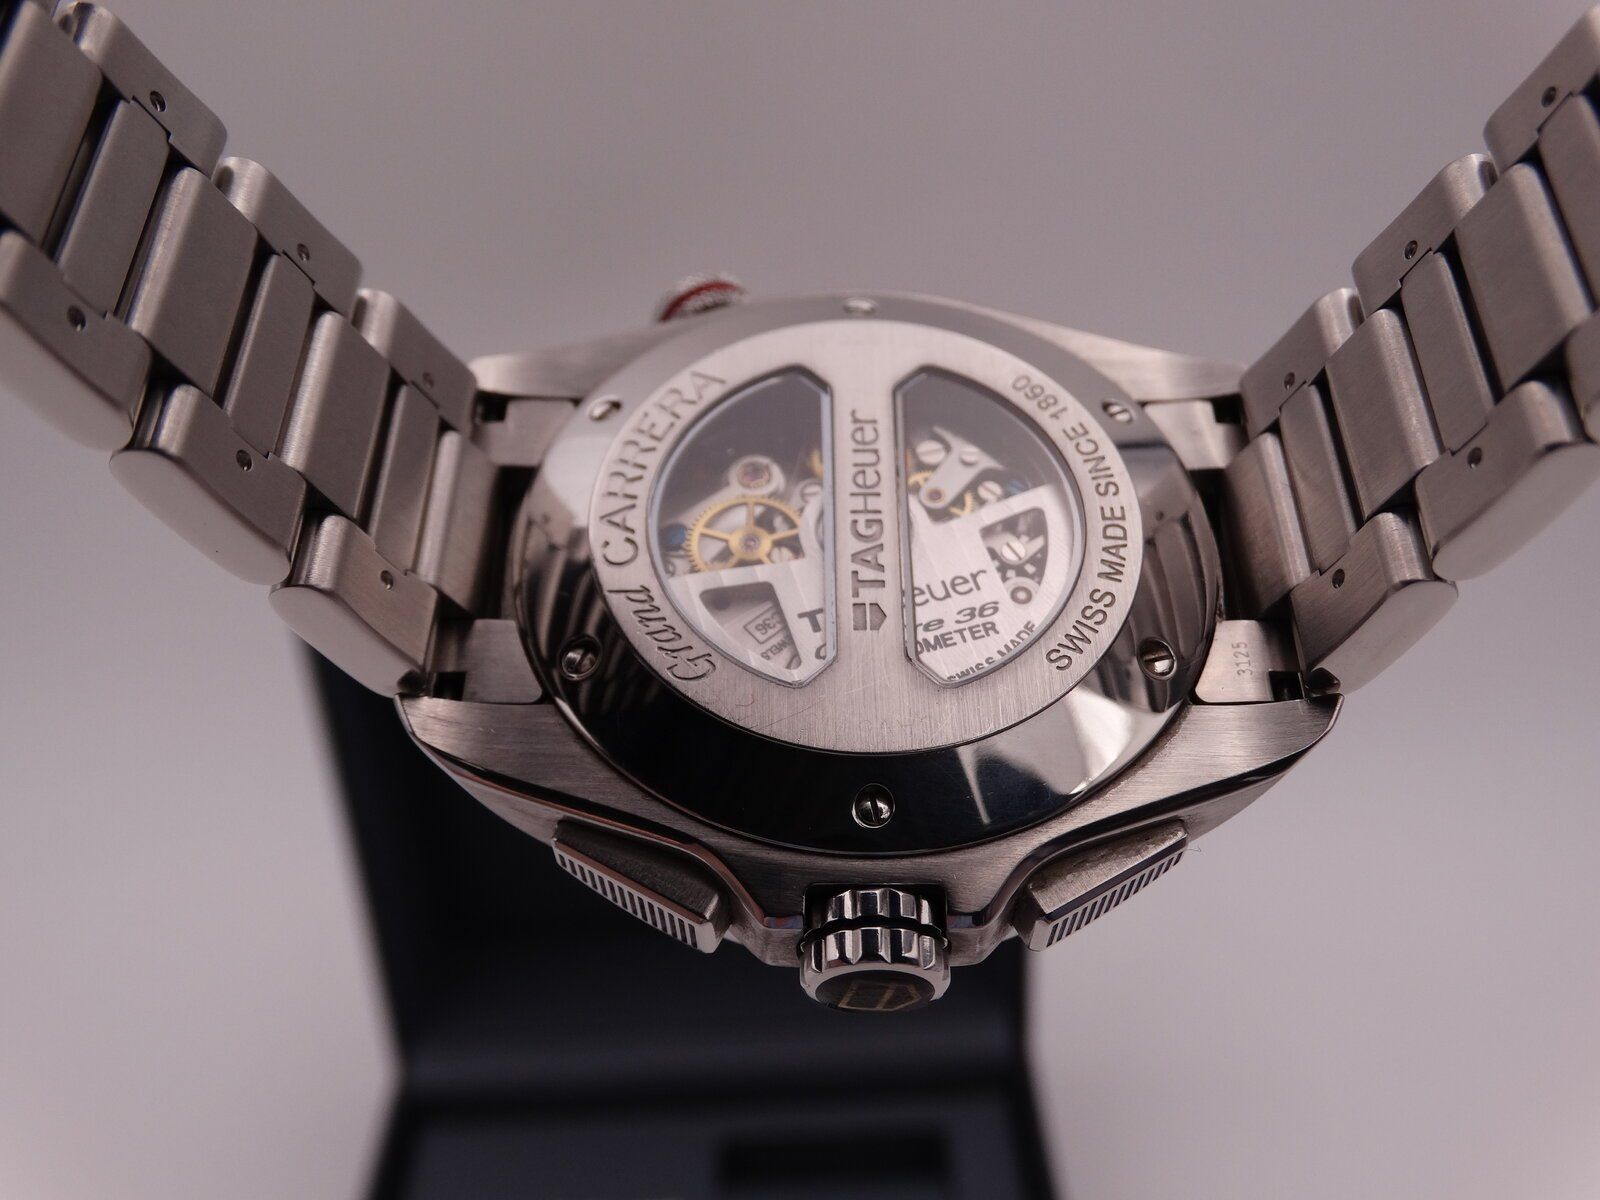 tag heuer grand carrera calibre 36 9403 copia.JPG